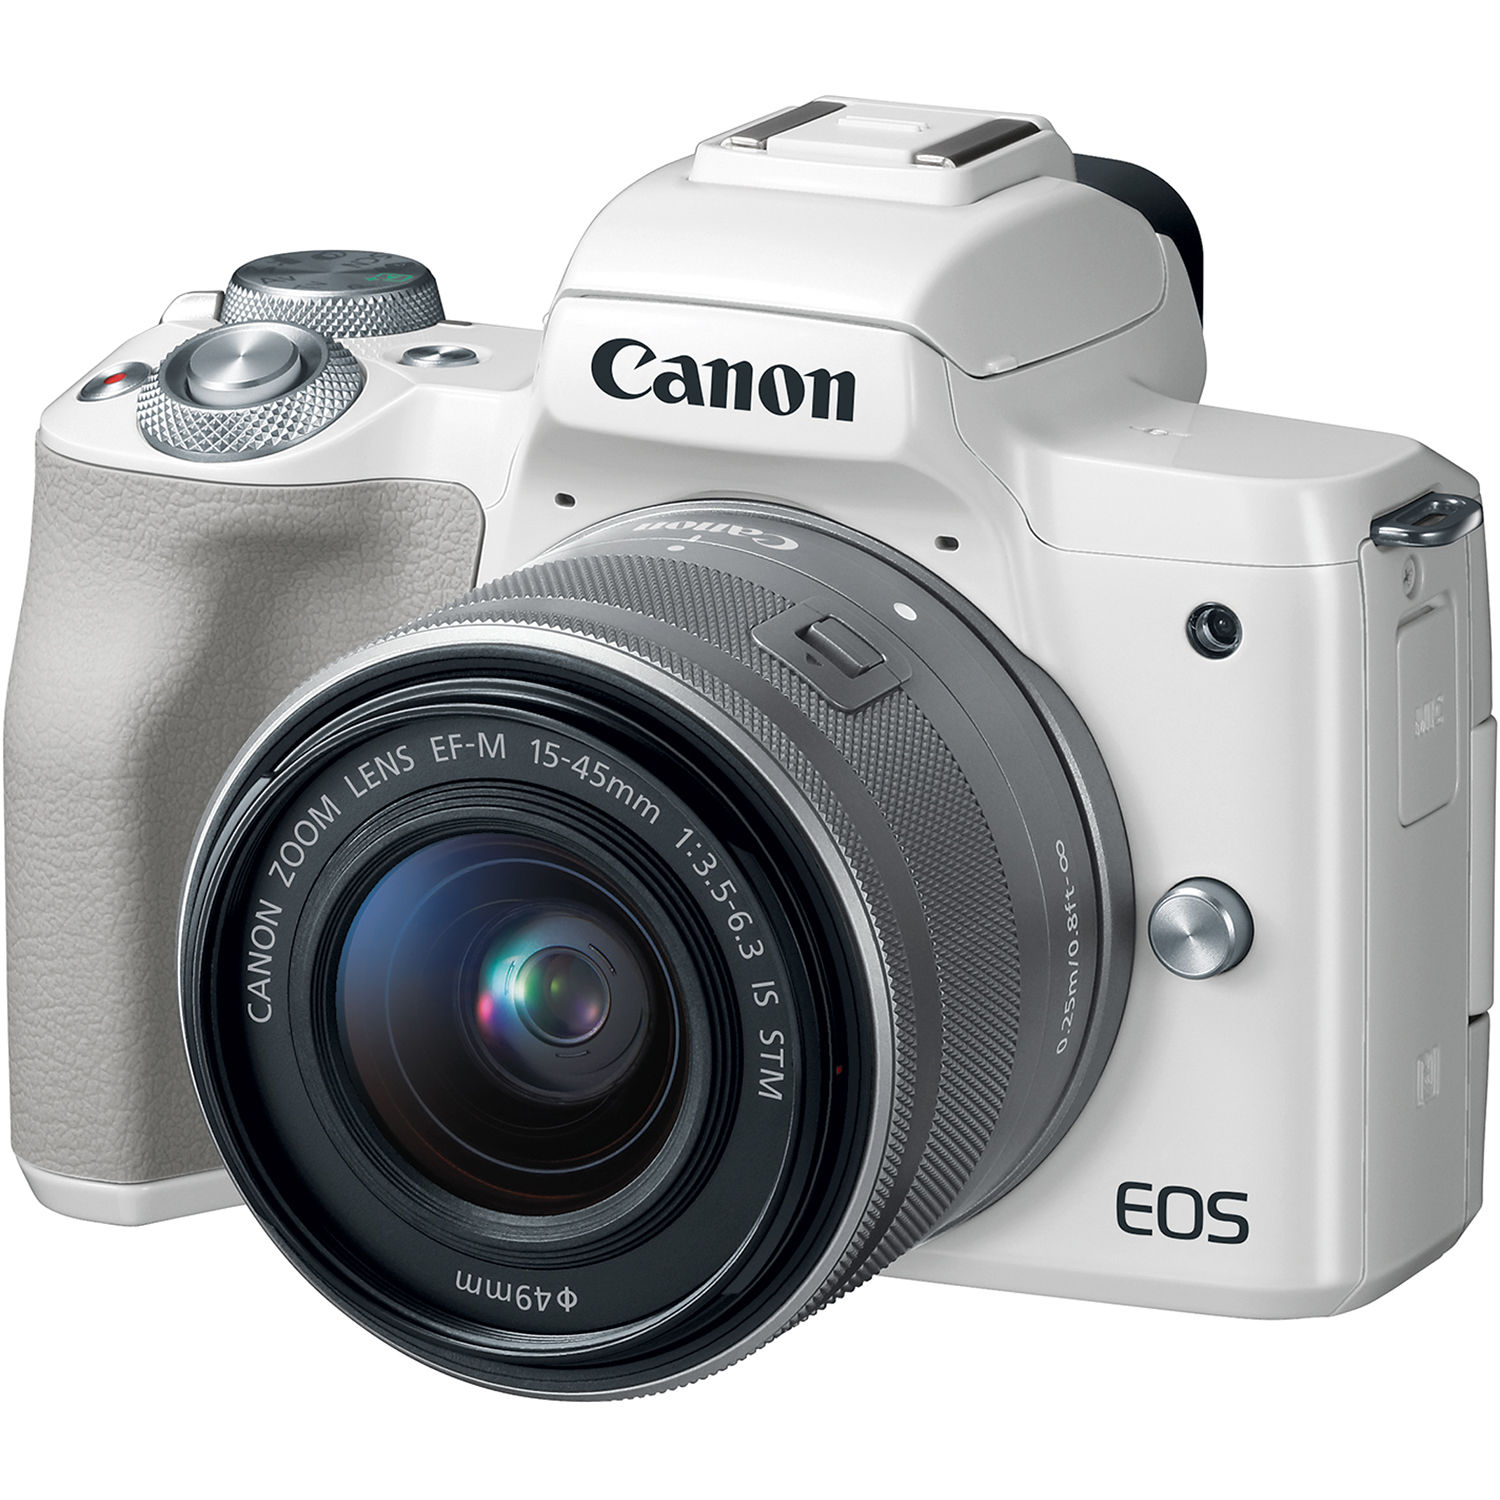 Canon Eos 2000d: Canon EOS M50 Mirrorless Digital Camera With 15-45mm 2681C011